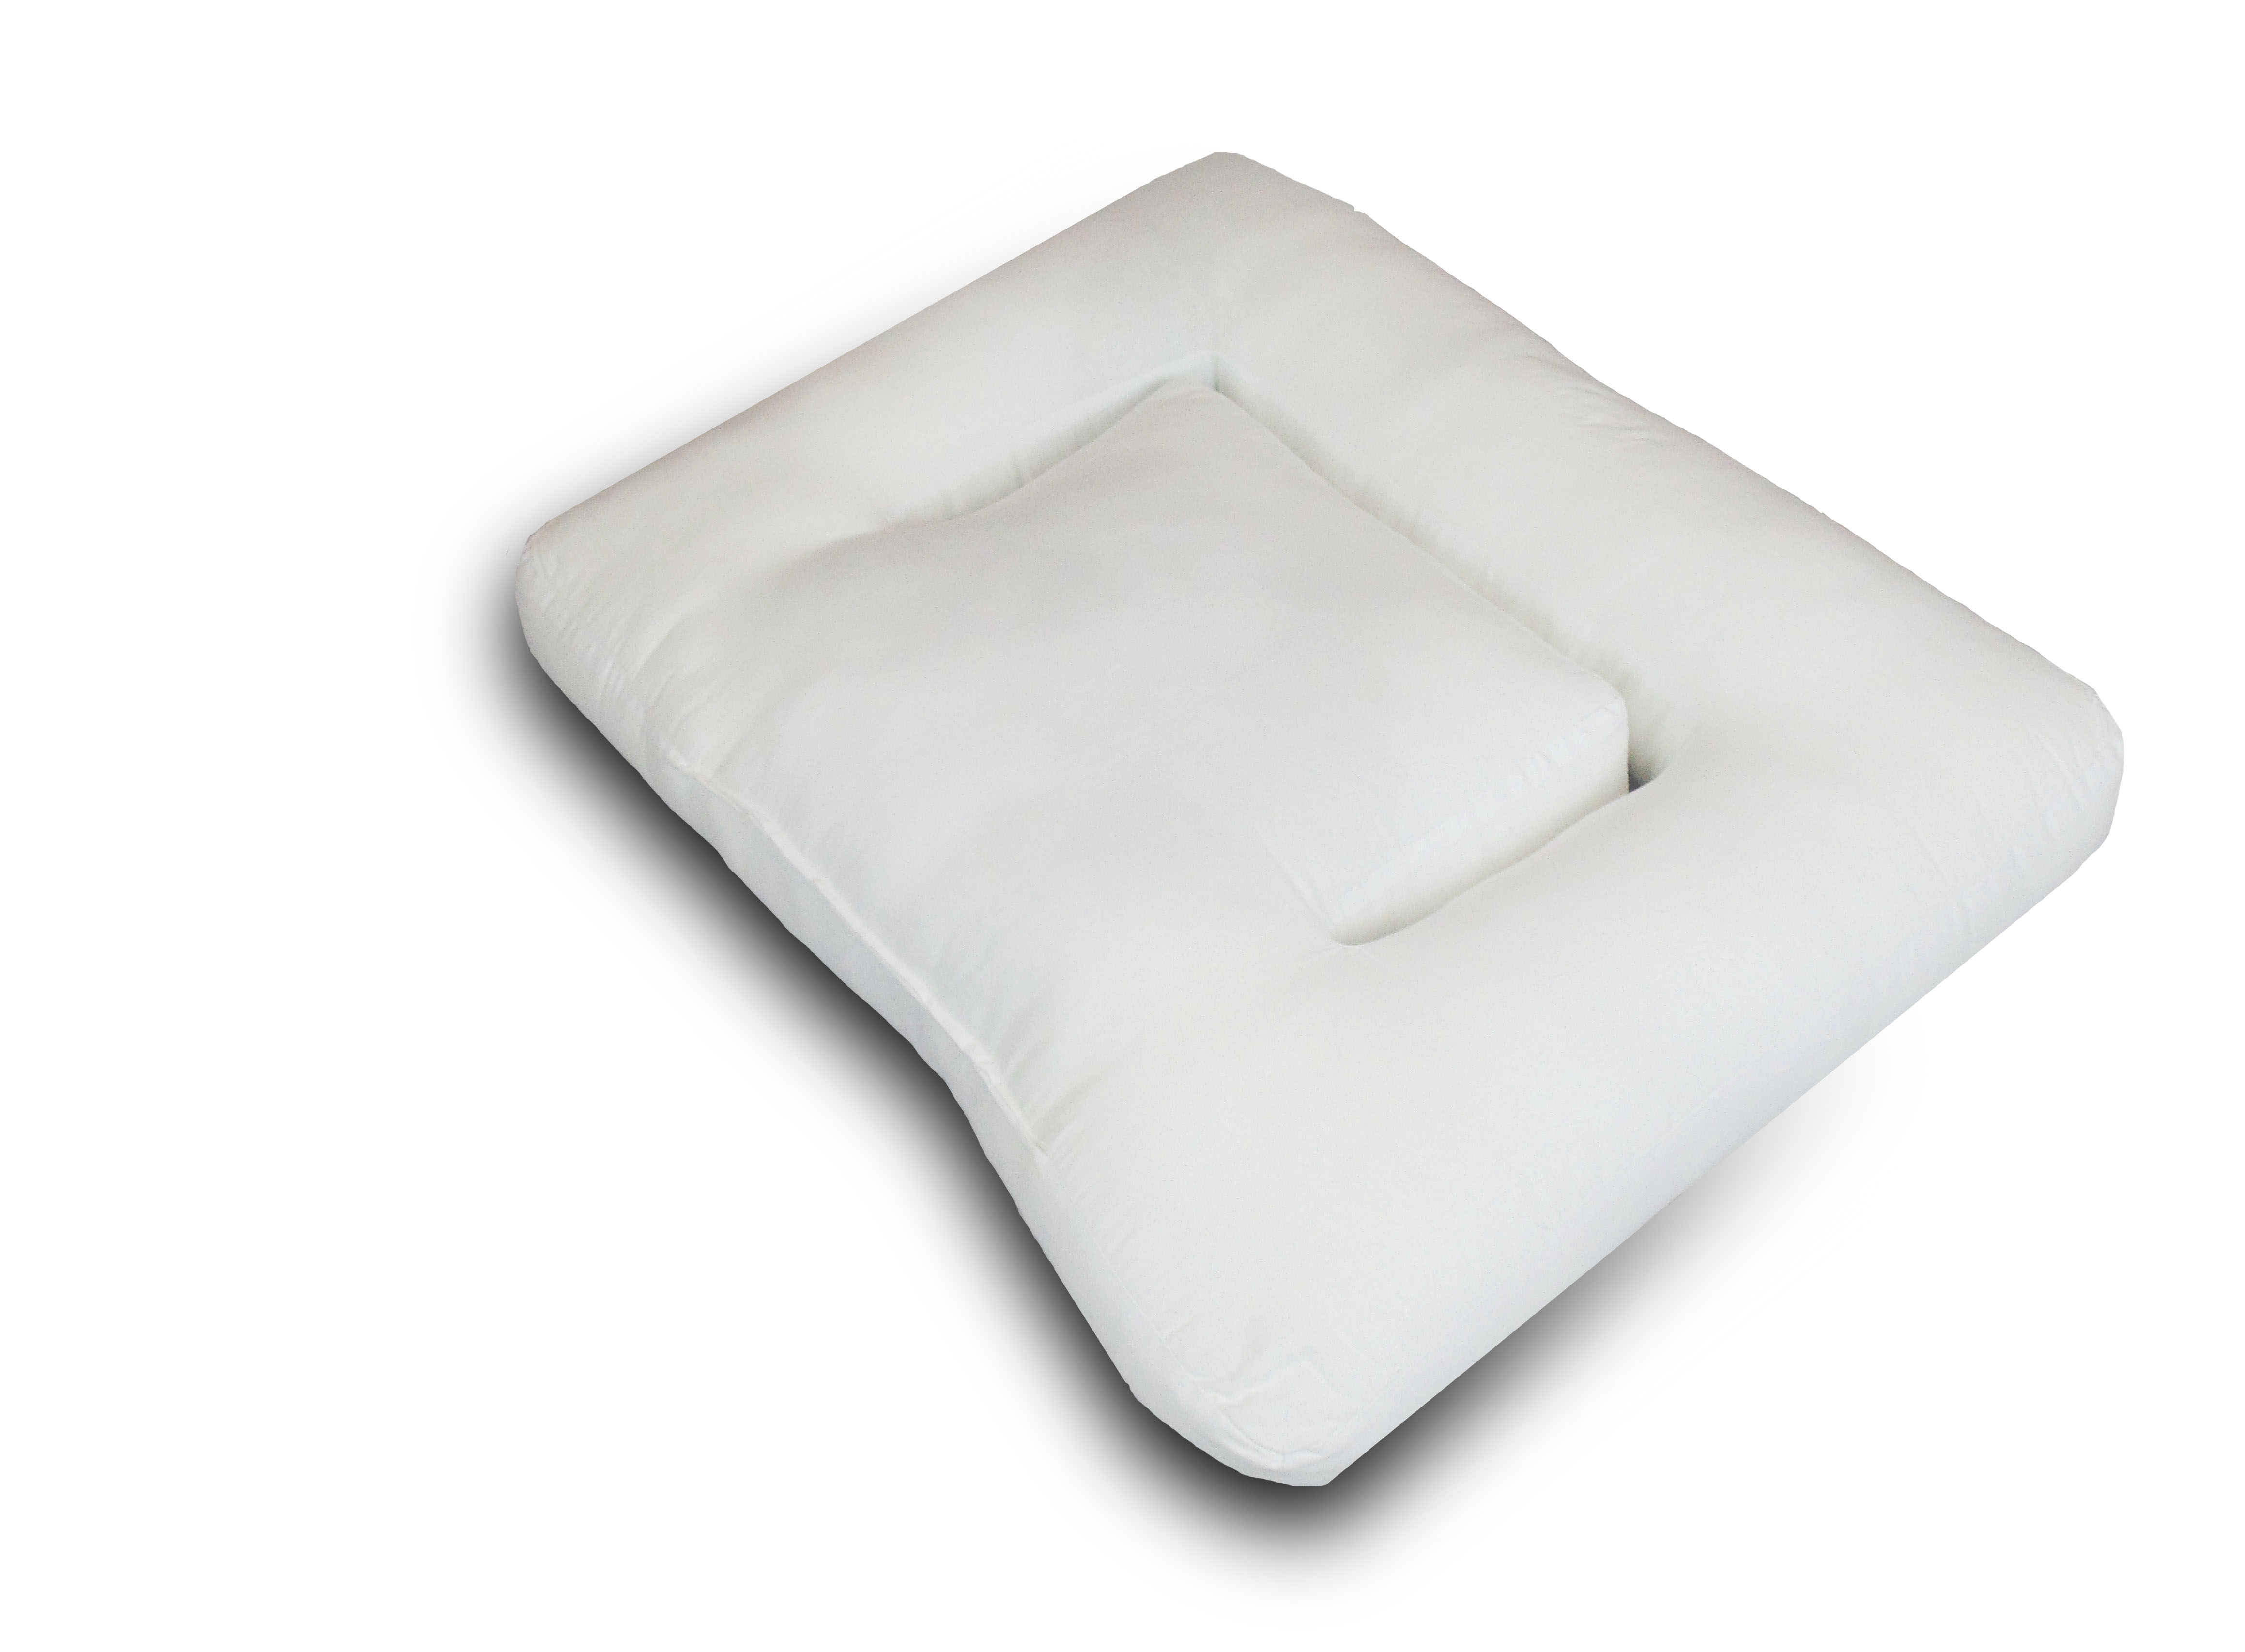 bedding inch snoring set gusset shipping cotton extra pillows firm of bath product white free allergenic overstock with hypo today pillow quilted